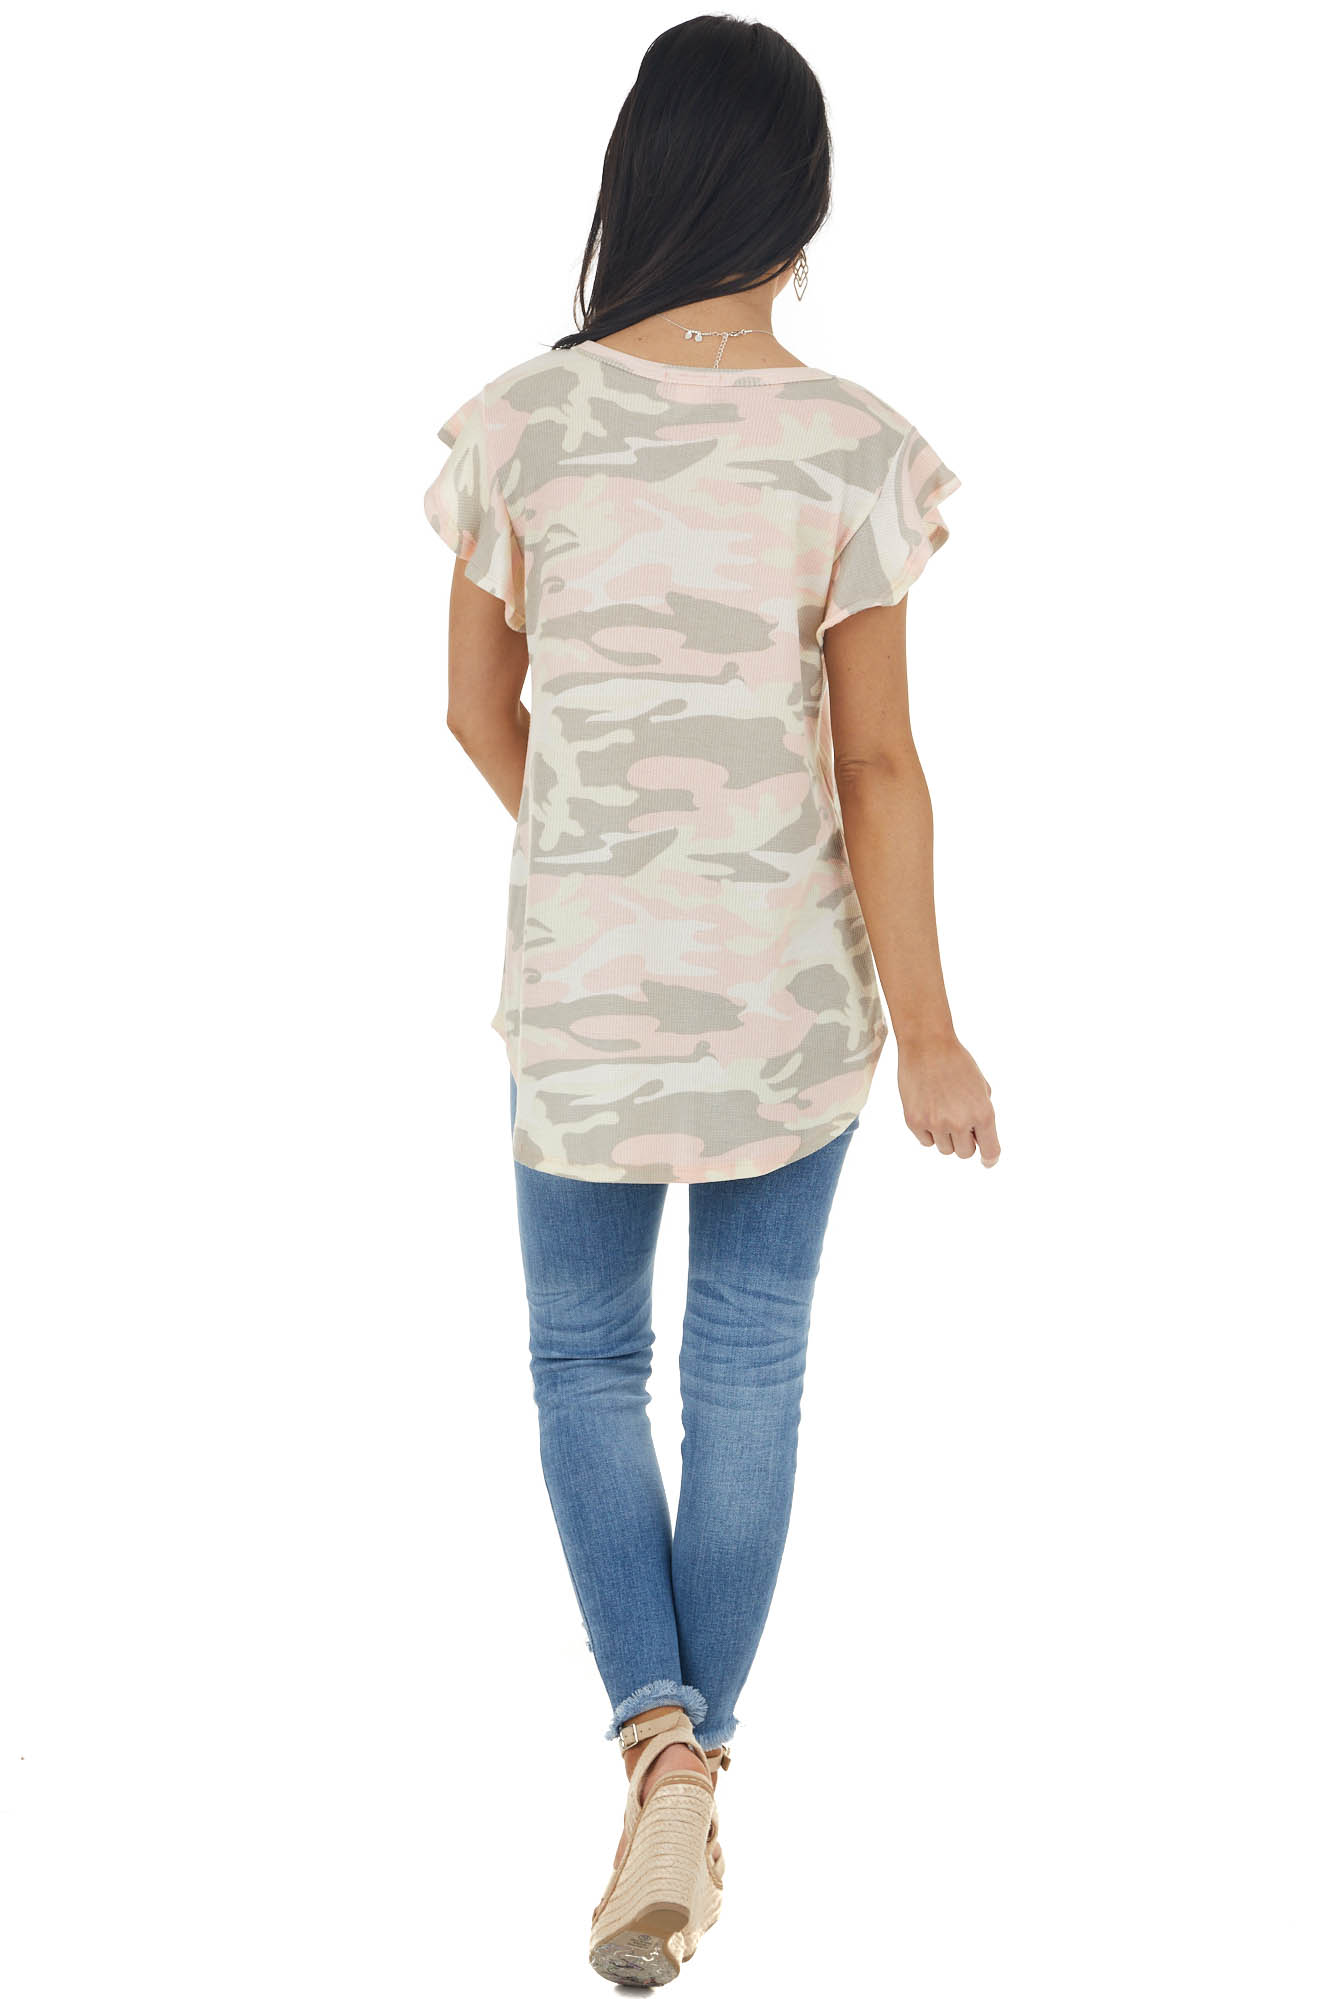 Dusty Blush Camo Print Short Ruffled Sleeve Thermal Top